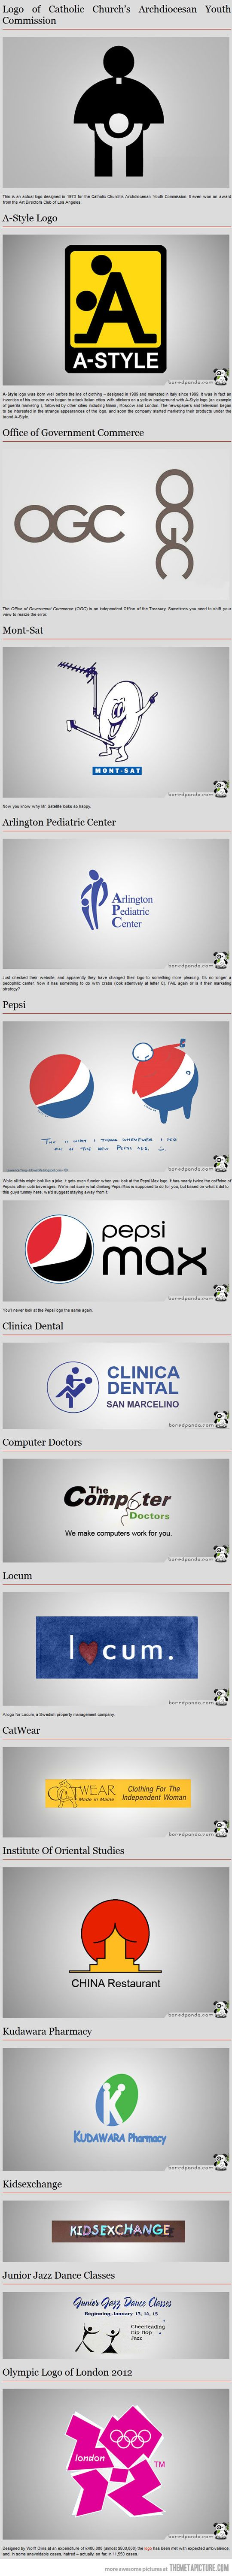 OMFG!  I'm crying I'm laughing so hard at the locum one.  That can't have been a mistake.  LMFAO.  (The worst logos ever designed)